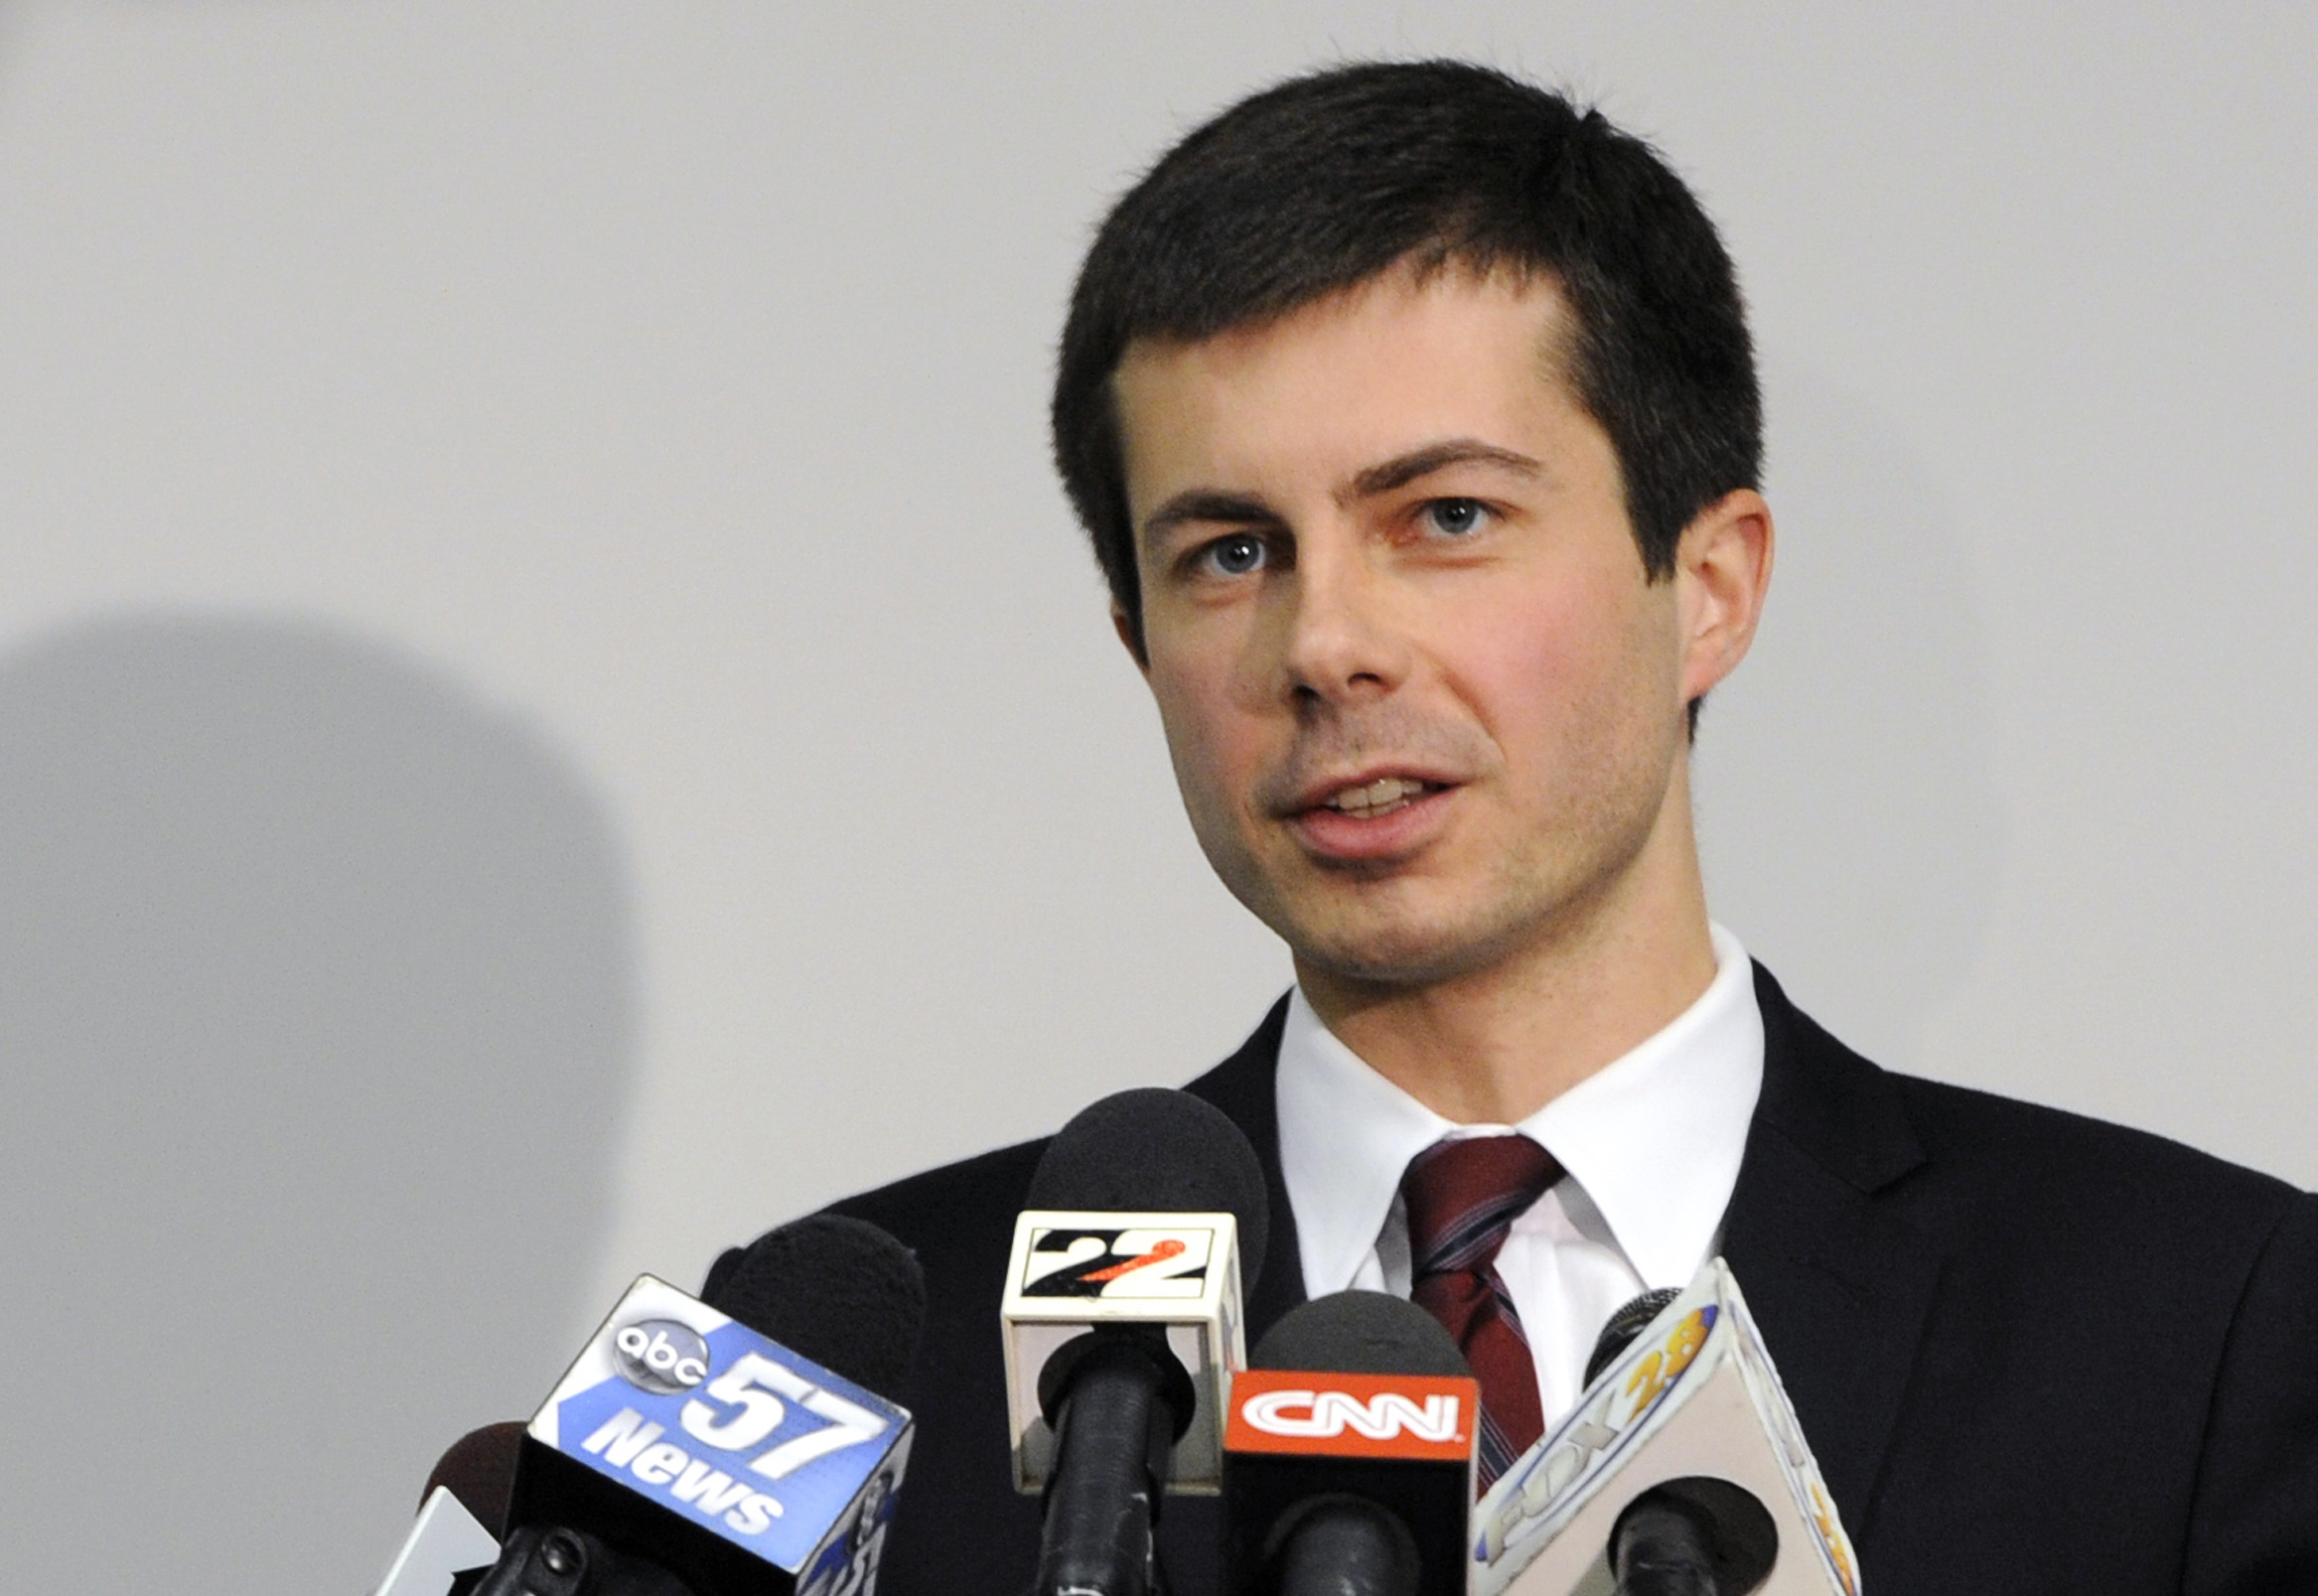 South Bend Mayor Pete Buttigieg came out as gay in an essay published on Tuesday, June 16, 2015,  in the South Bend Tribune.